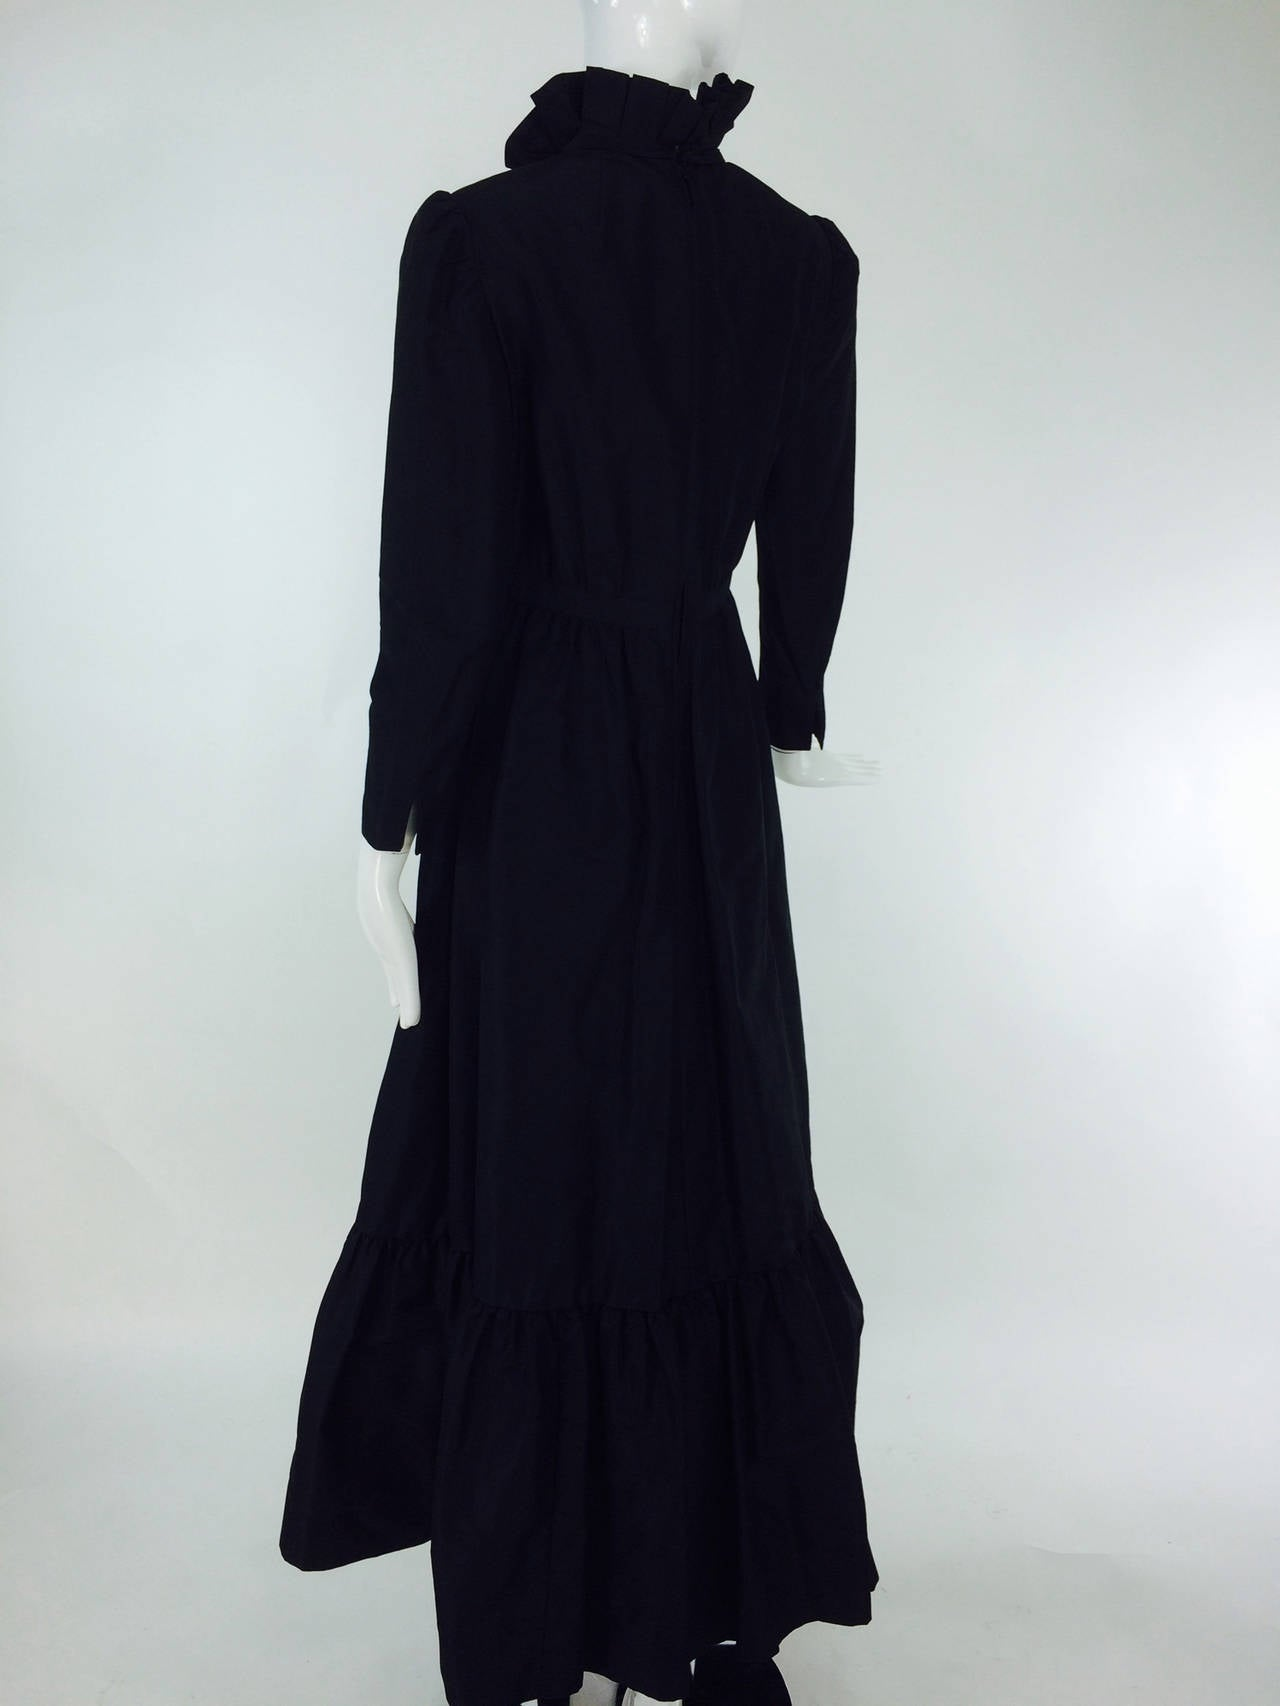 Shannon Rodgers for Jerry Silverman black Victorian style gown 1960s 4